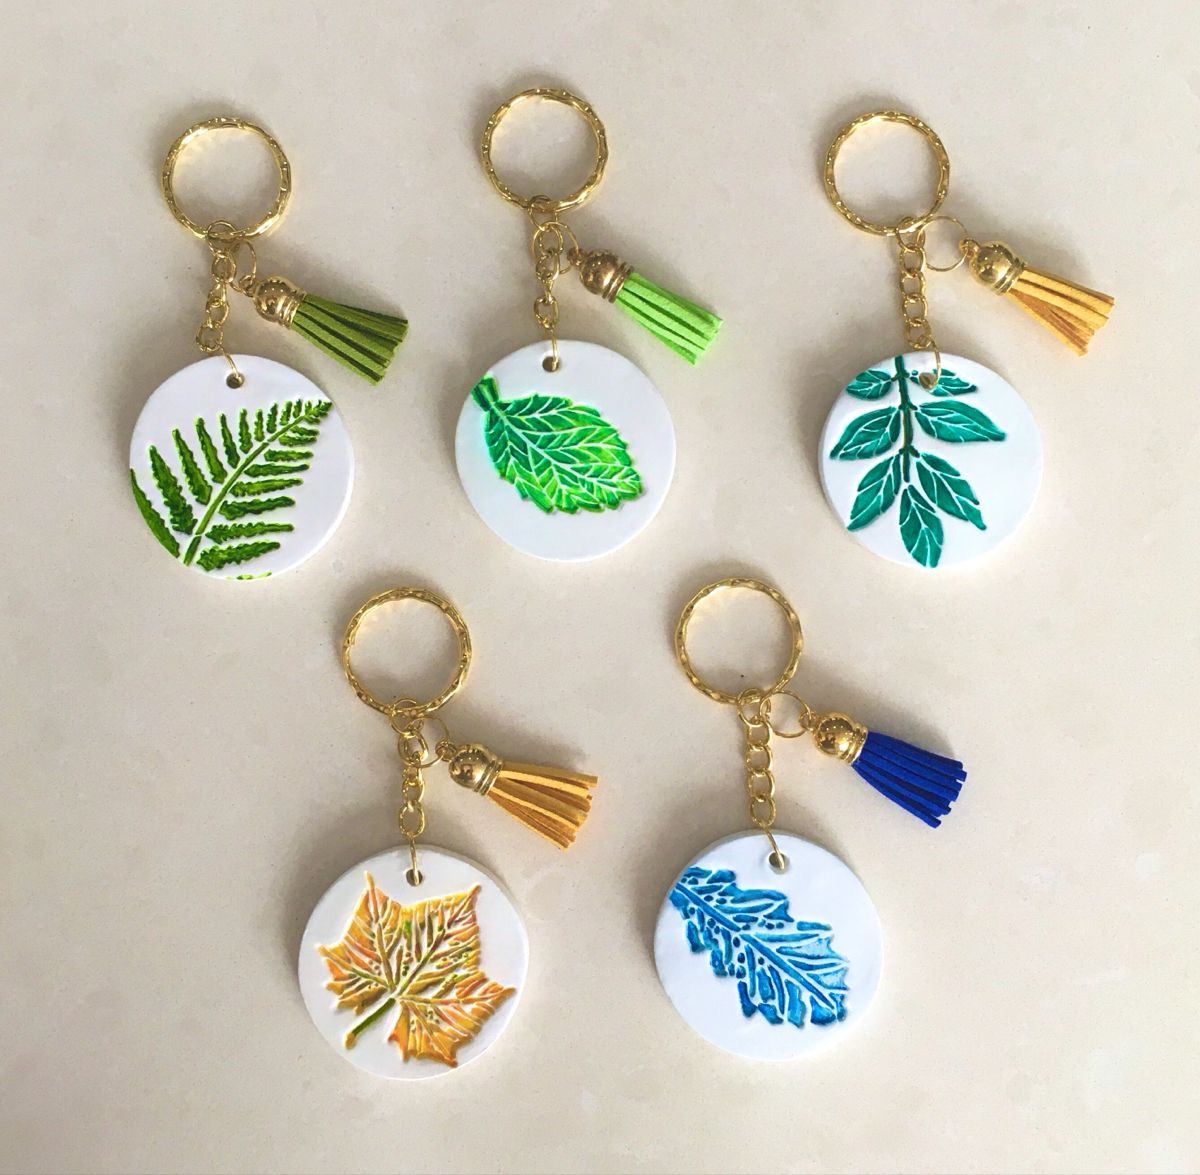 Air Dry Clay Keychains With Leaf Stamps Diy Air Dry Clay Polymer Clay Jewelry Diy Clay Crafts Air Dry